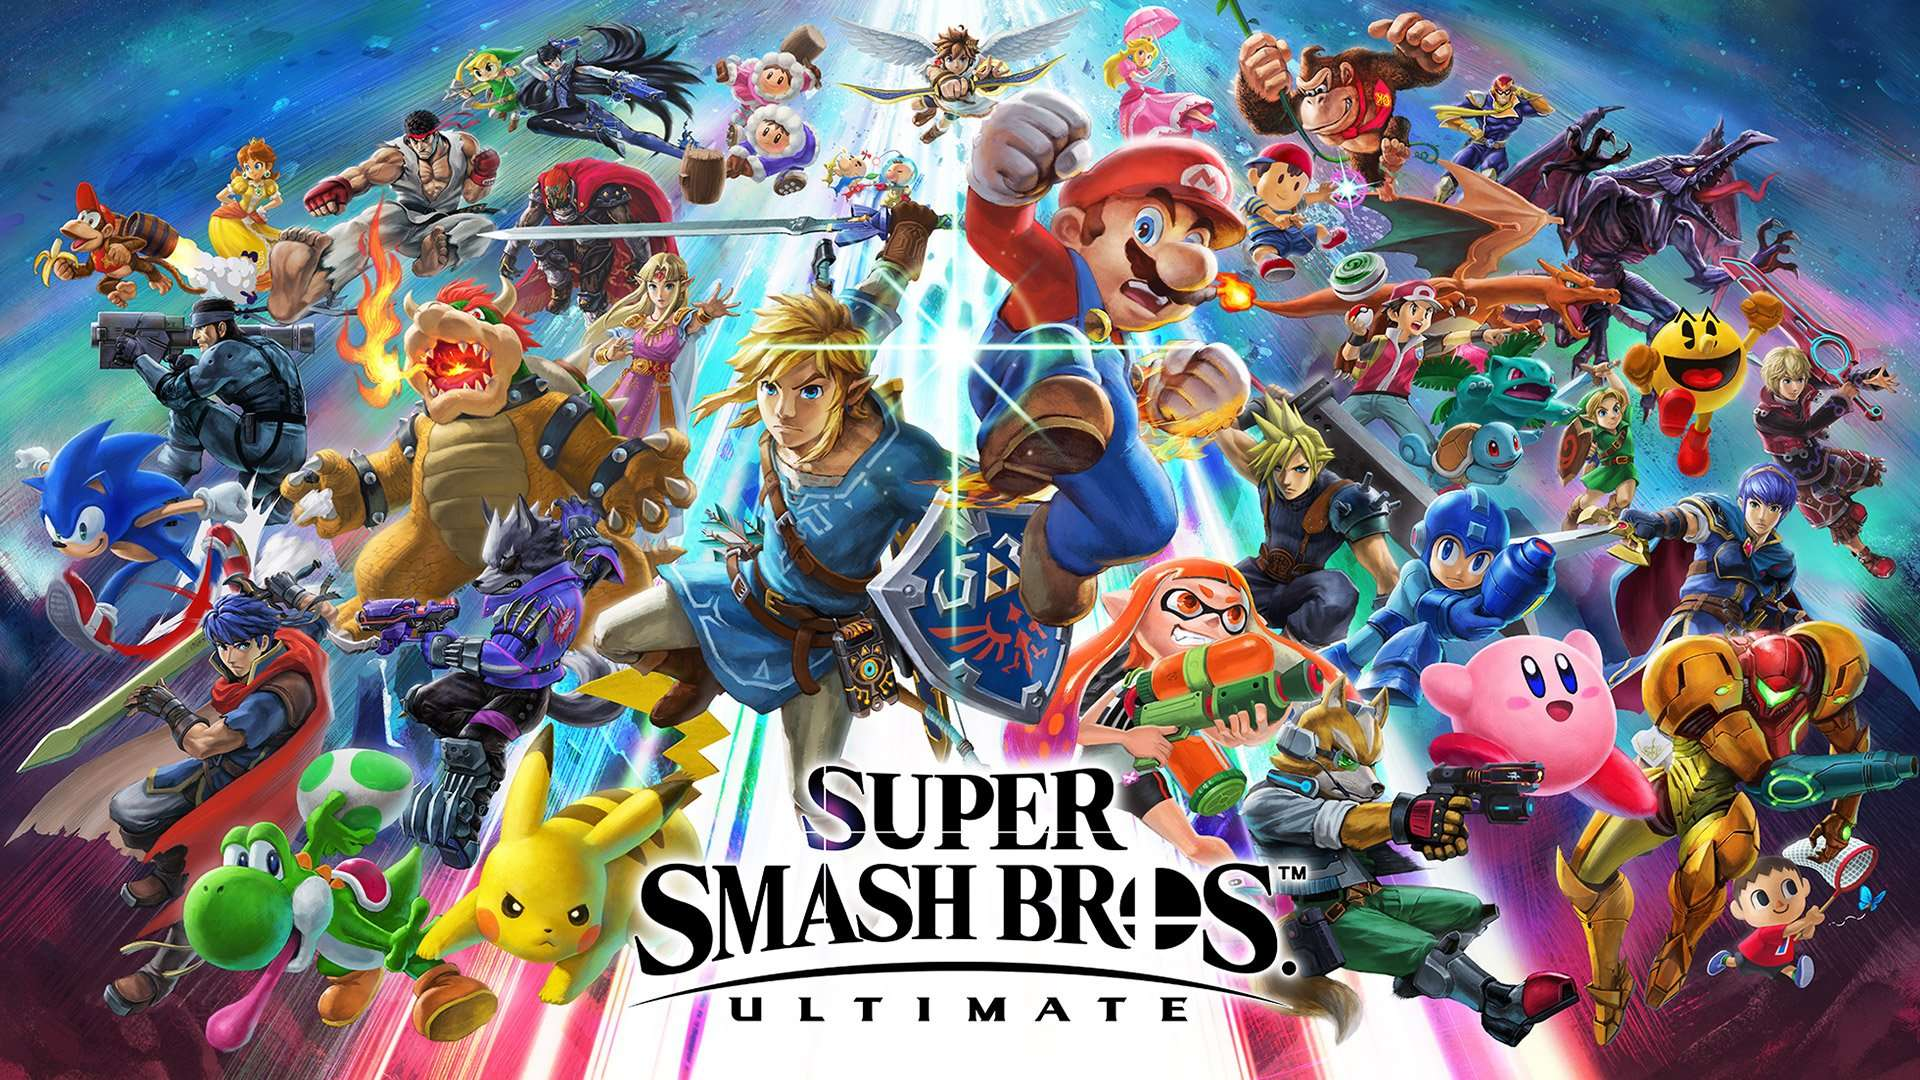 Super Smash Bros. on Nintendo Switch has come up with new updates